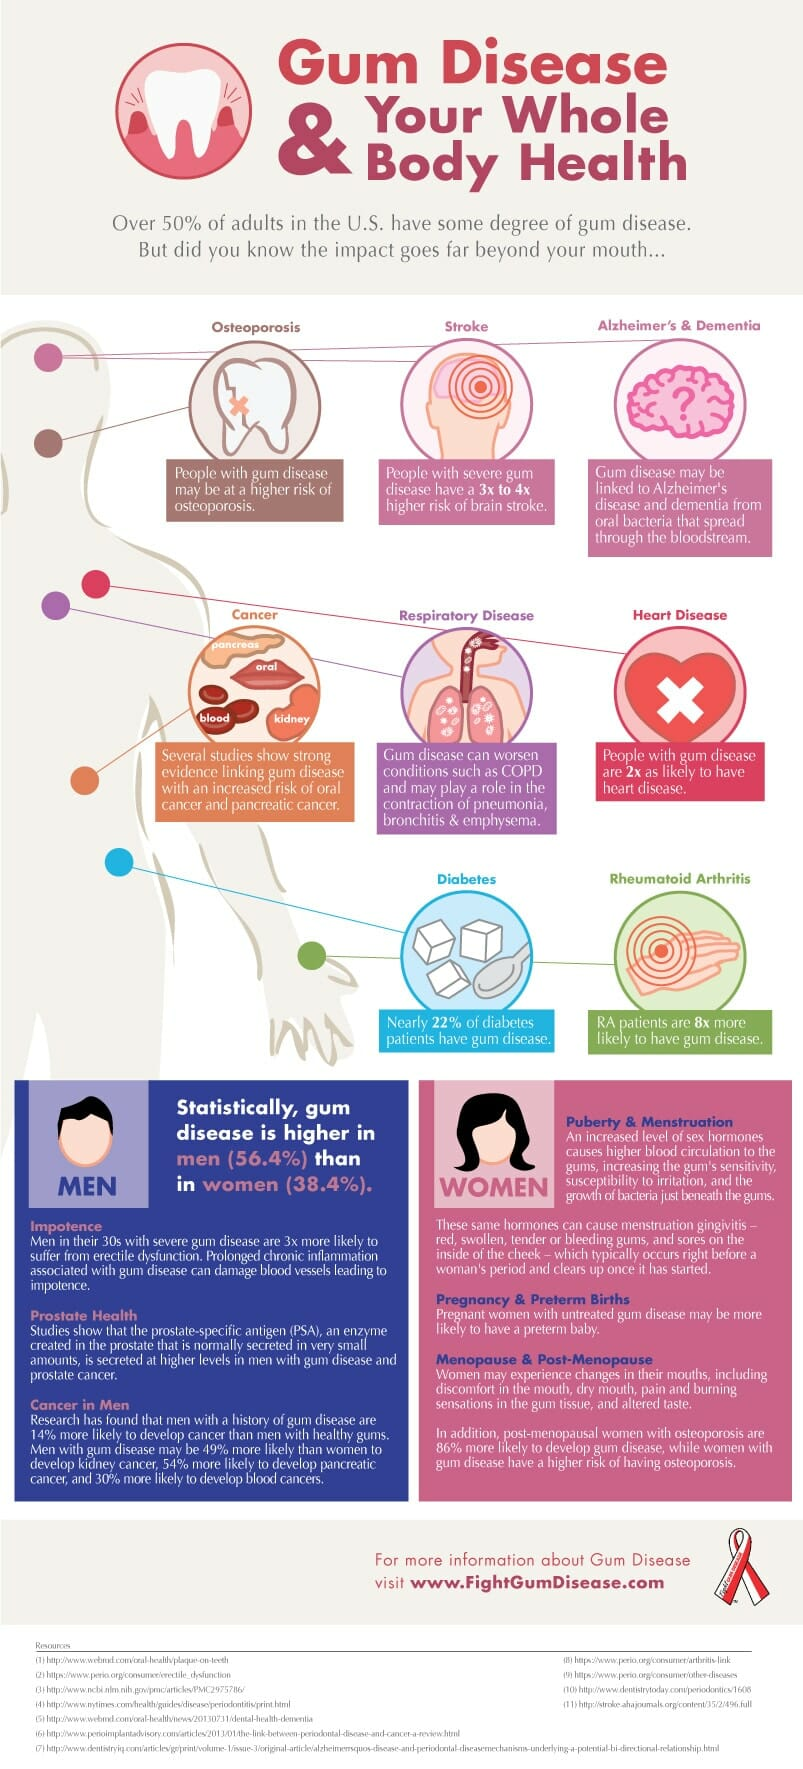 Gum Disease and whole body health infographic